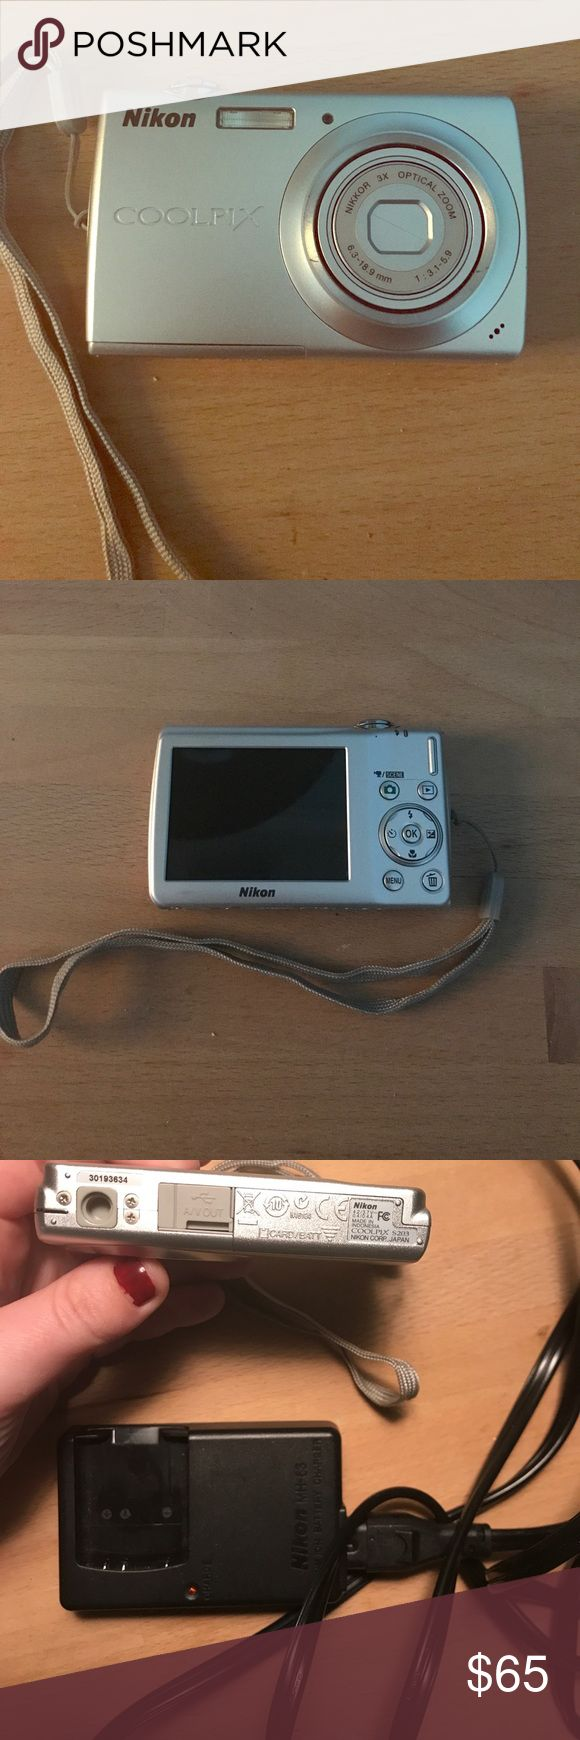 Nikon Coolpix camera No scratches on screen, used but still good condition, comes with battery, battery charger, and camera case but does not come with SD card for pictures Nikon Other